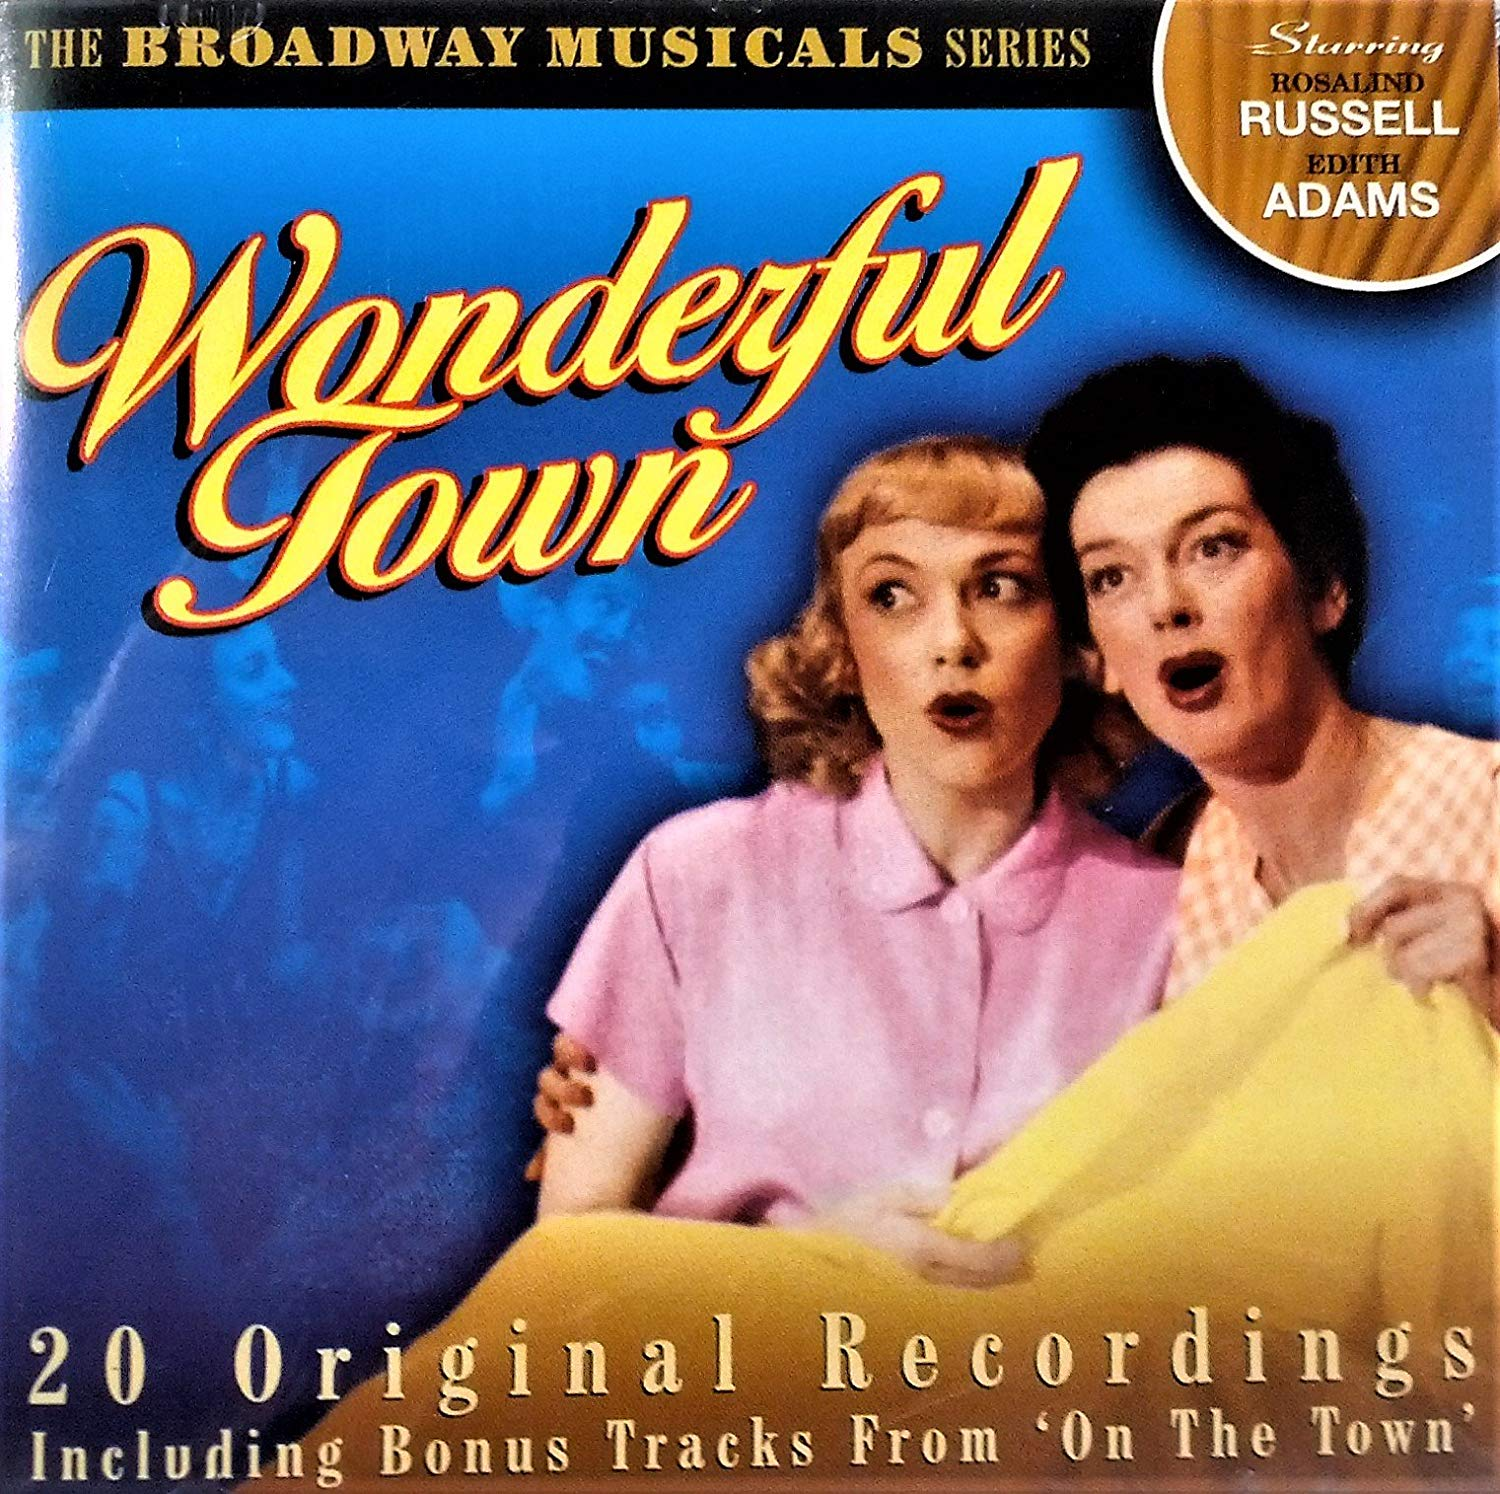 The Broadway Musical Series: Wonderful Town